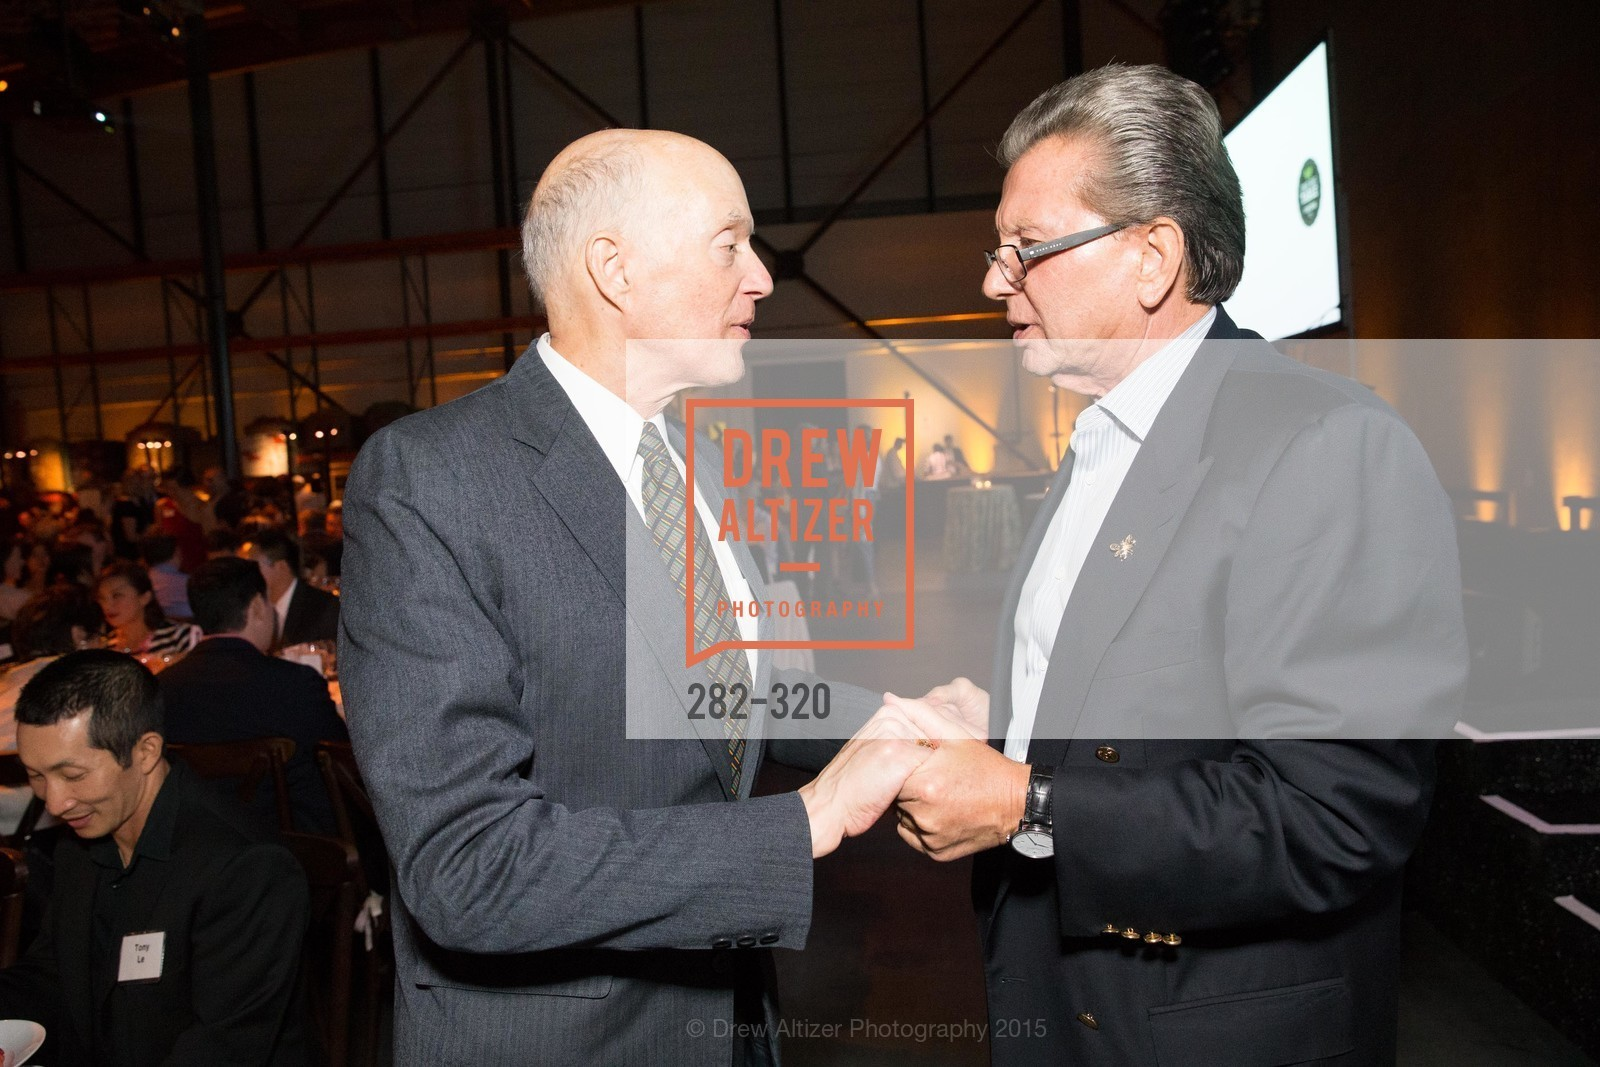 Stephen Pearce, George Marcus, SF - Marin Food Bank Presents ONE BIG TABLE, SF- Marin Food Bank. 900 Pennsylvania Ave, September 26th, 2015,Drew Altizer, Drew Altizer Photography, full-service agency, private events, San Francisco photographer, photographer california